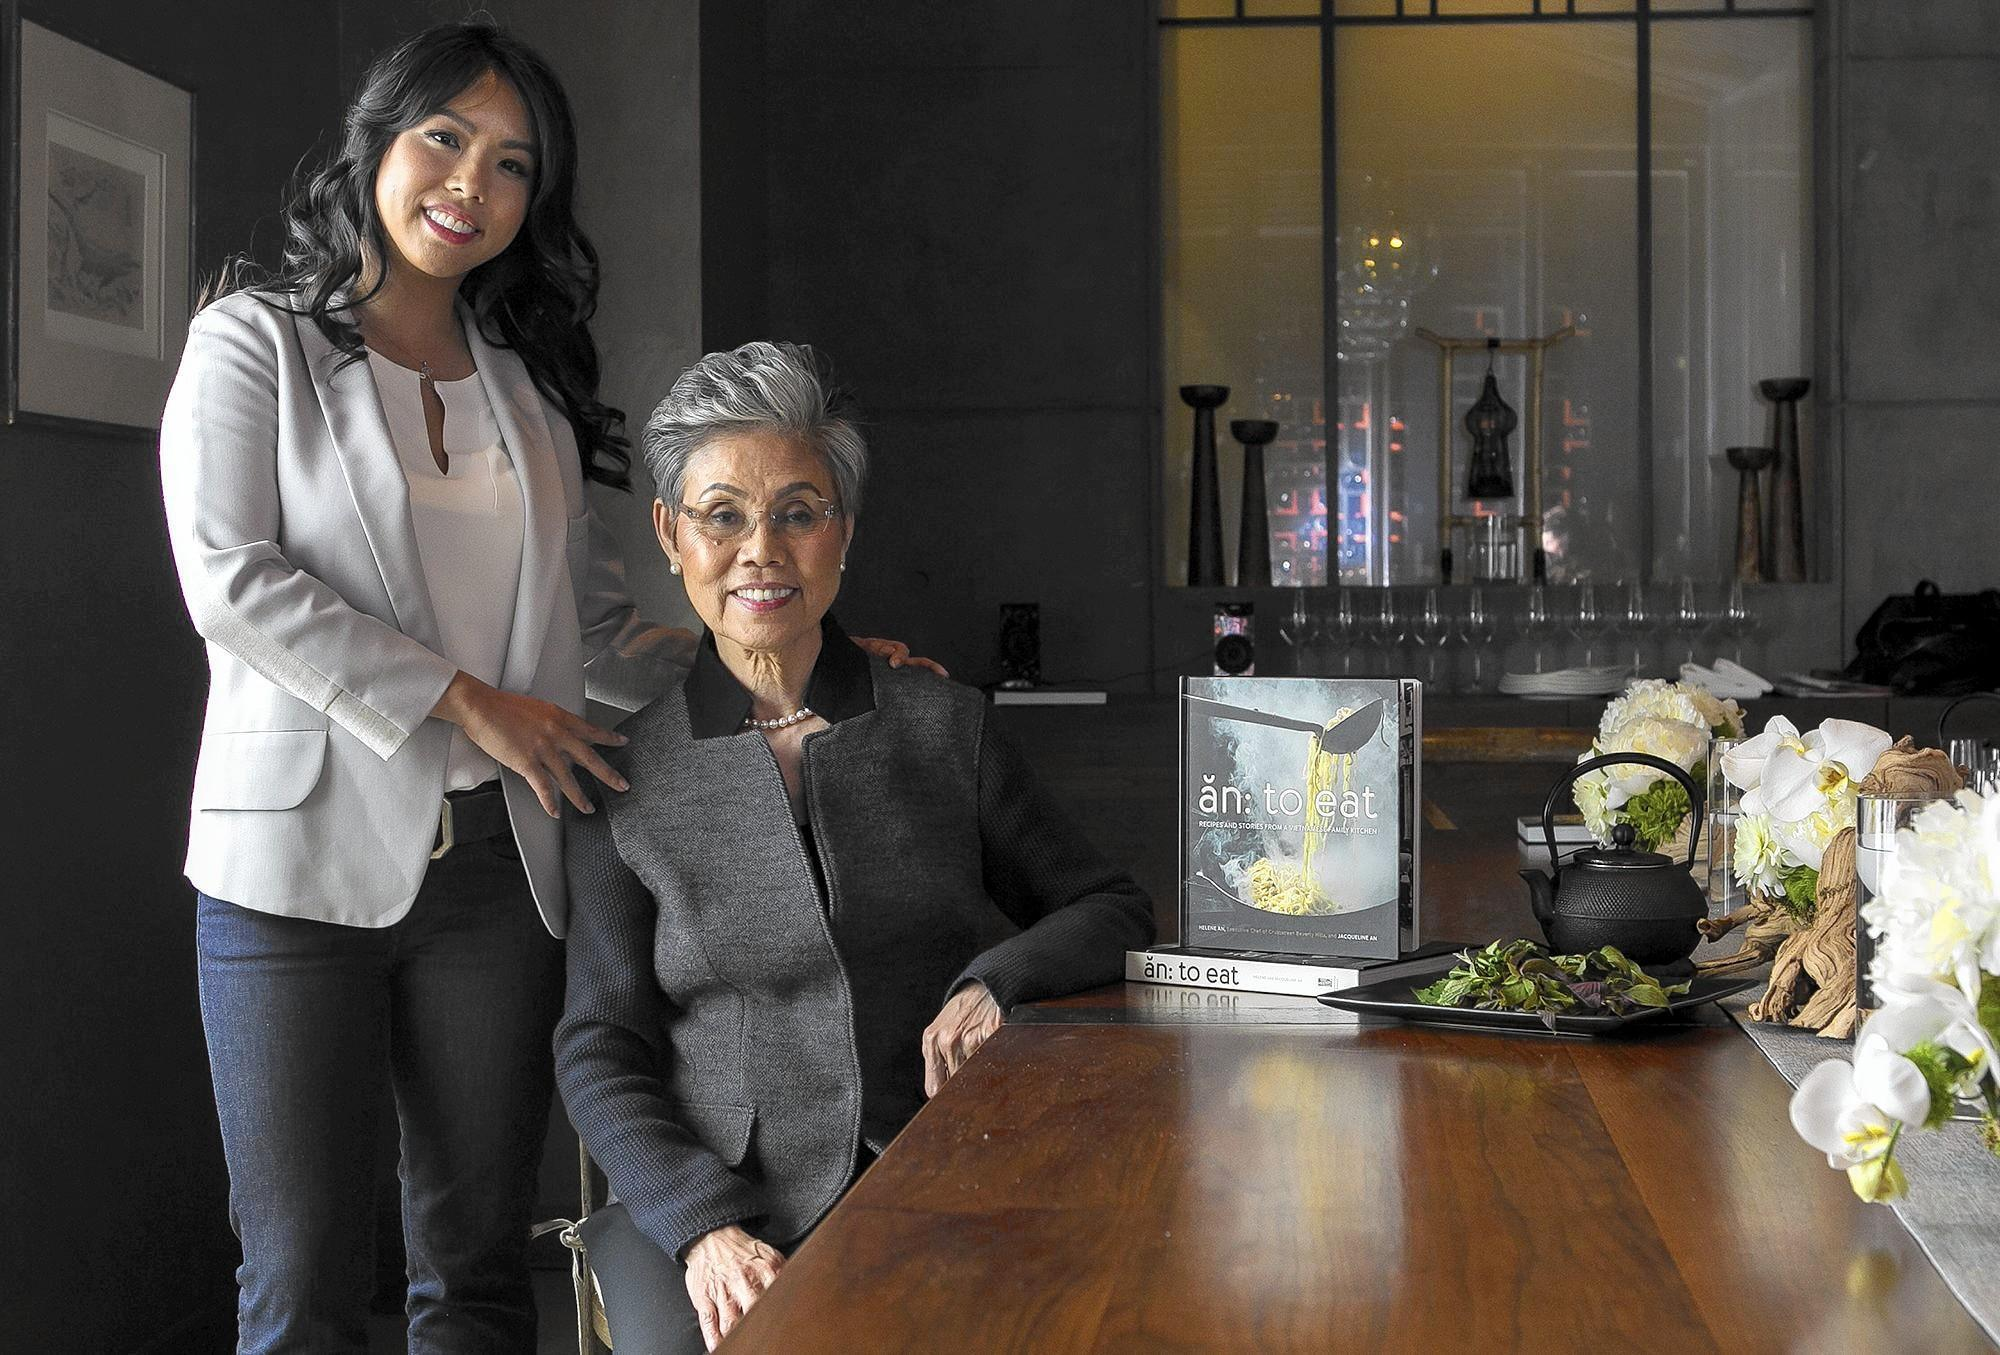 Secrets of AnQi made public in new cookbook